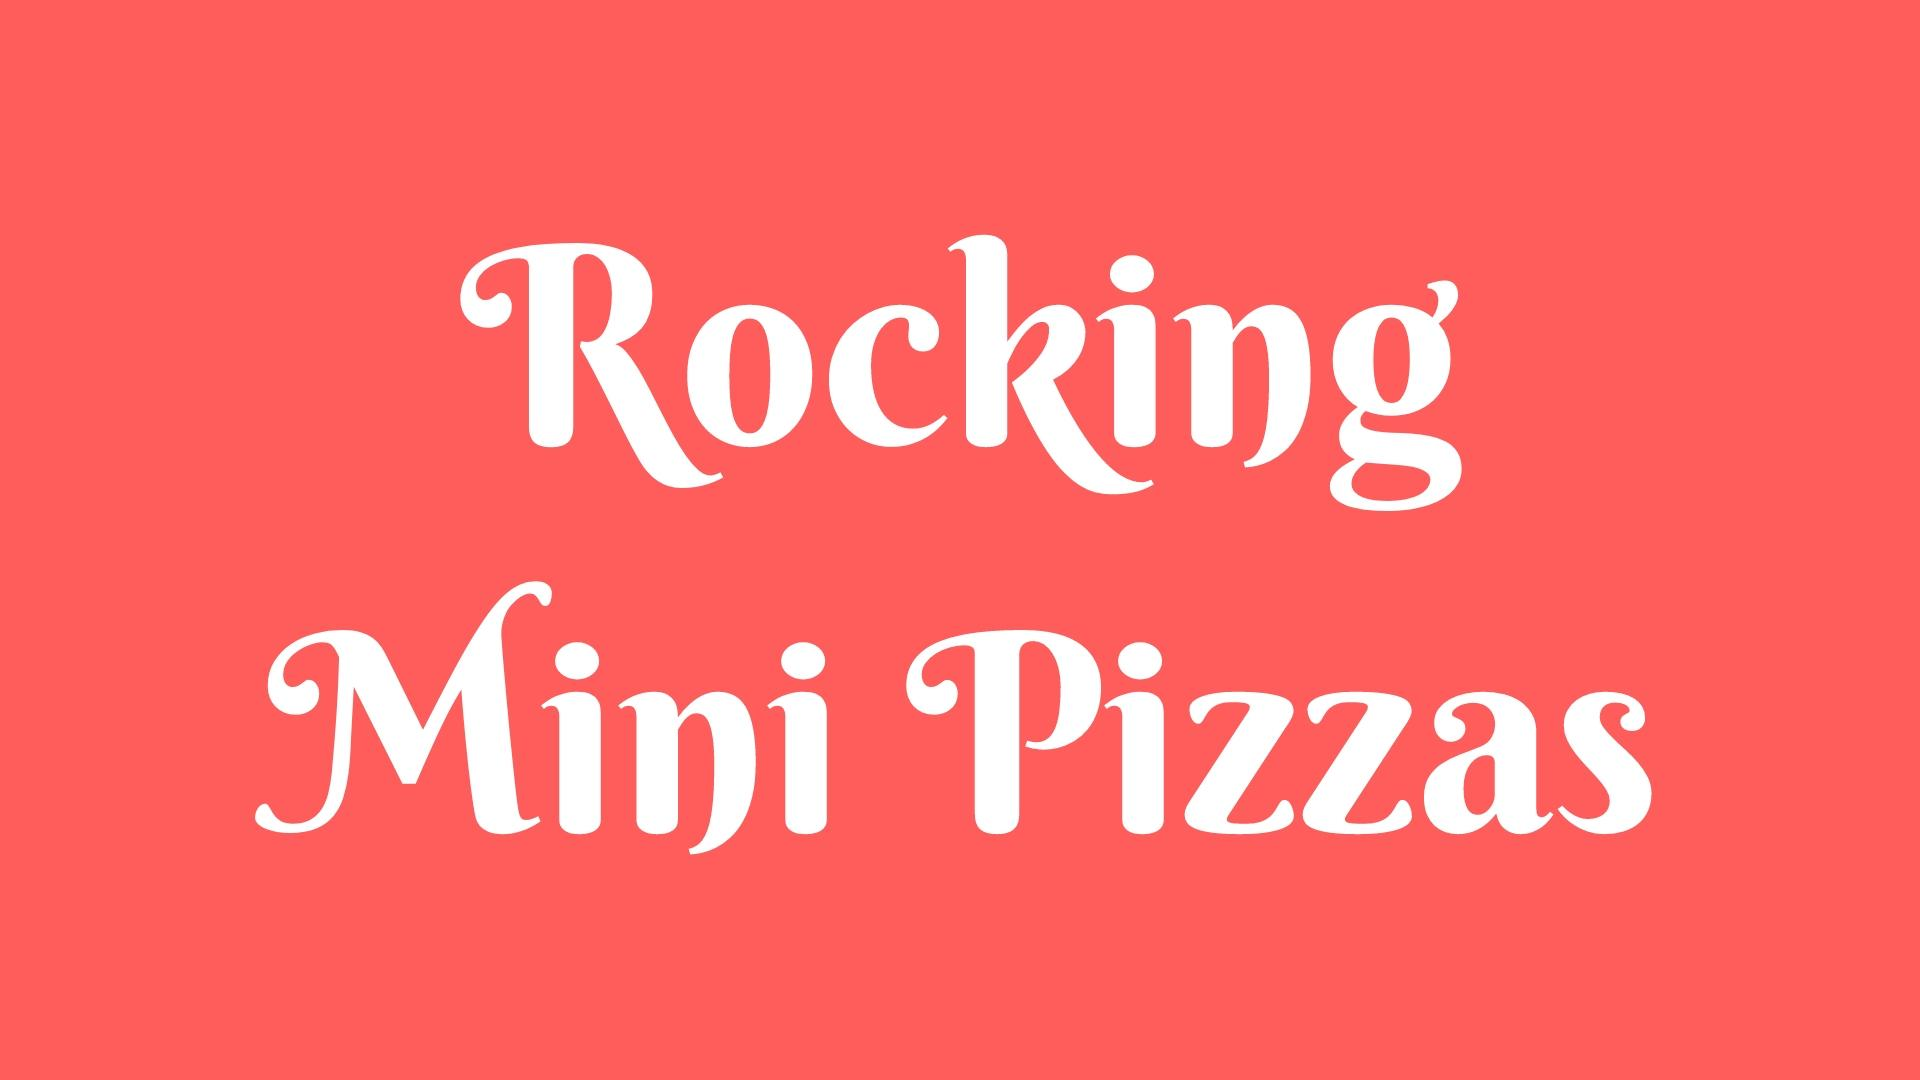 Rocking Mini Pizzas